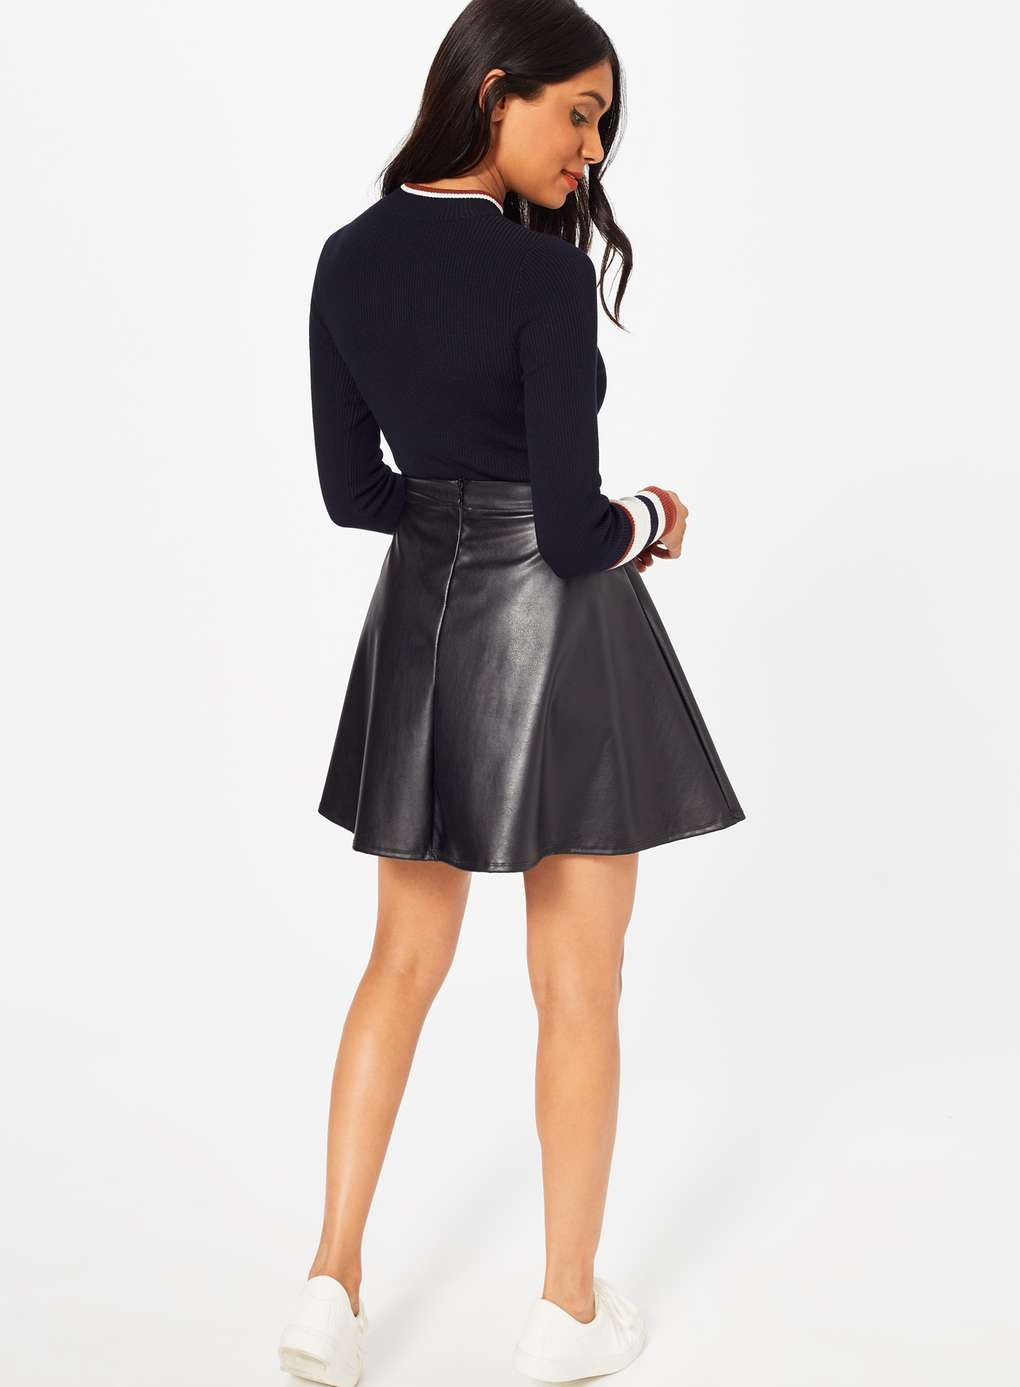 Burgundy Leather Pencil Skirt | Faux Leather Skirt | Silver Leather Pencil Skirt